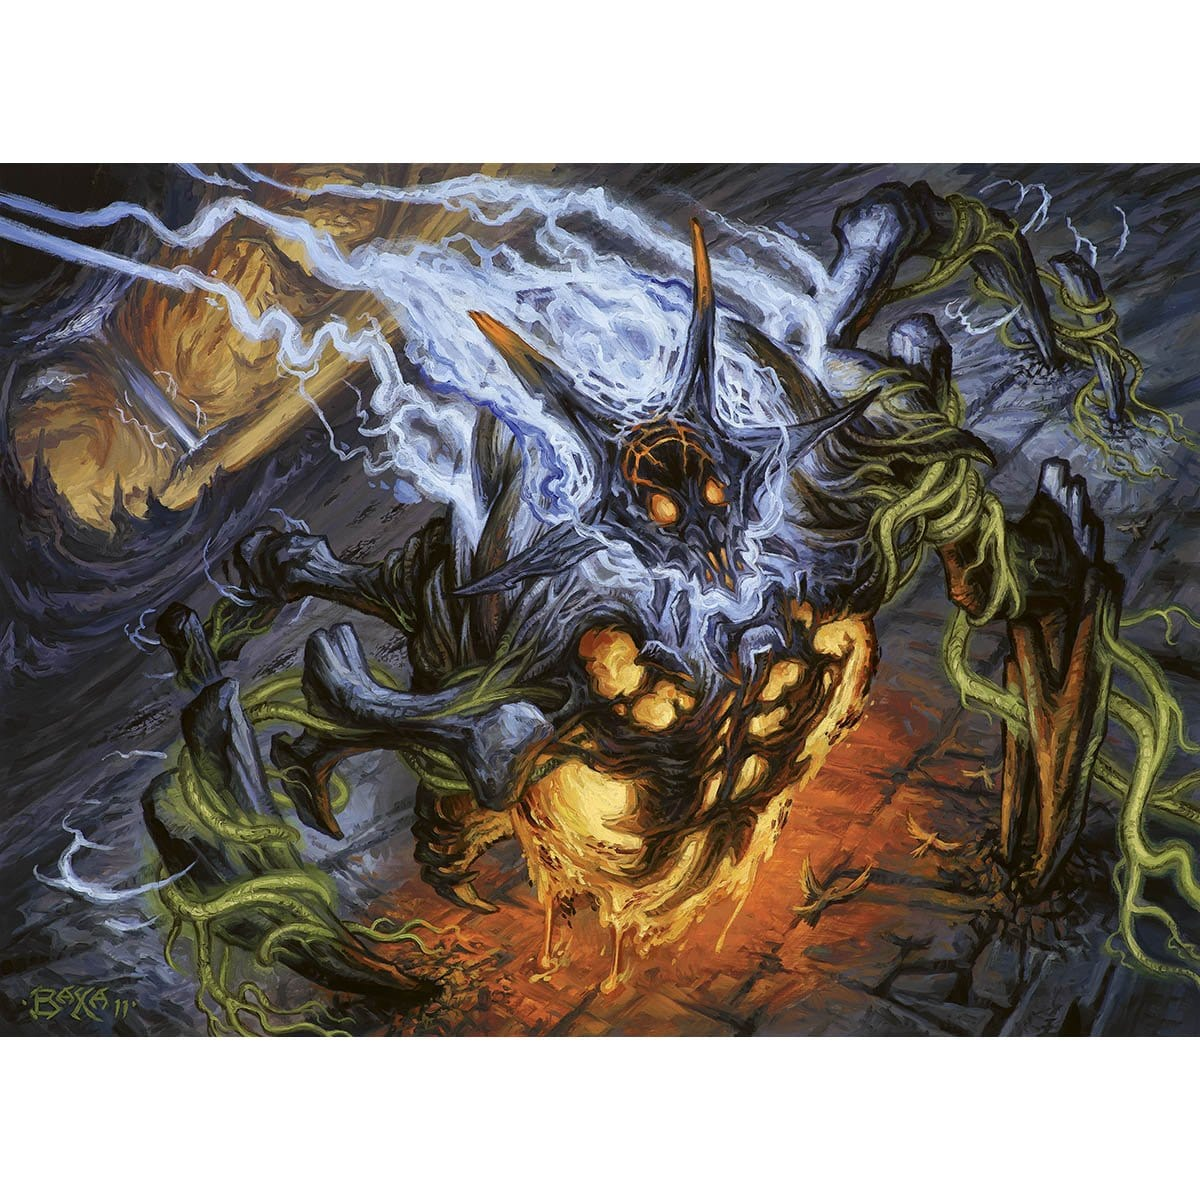 Maelstrom Wanderer Print - Print - Original Magic Art - Accessories for Magic the Gathering and other card games